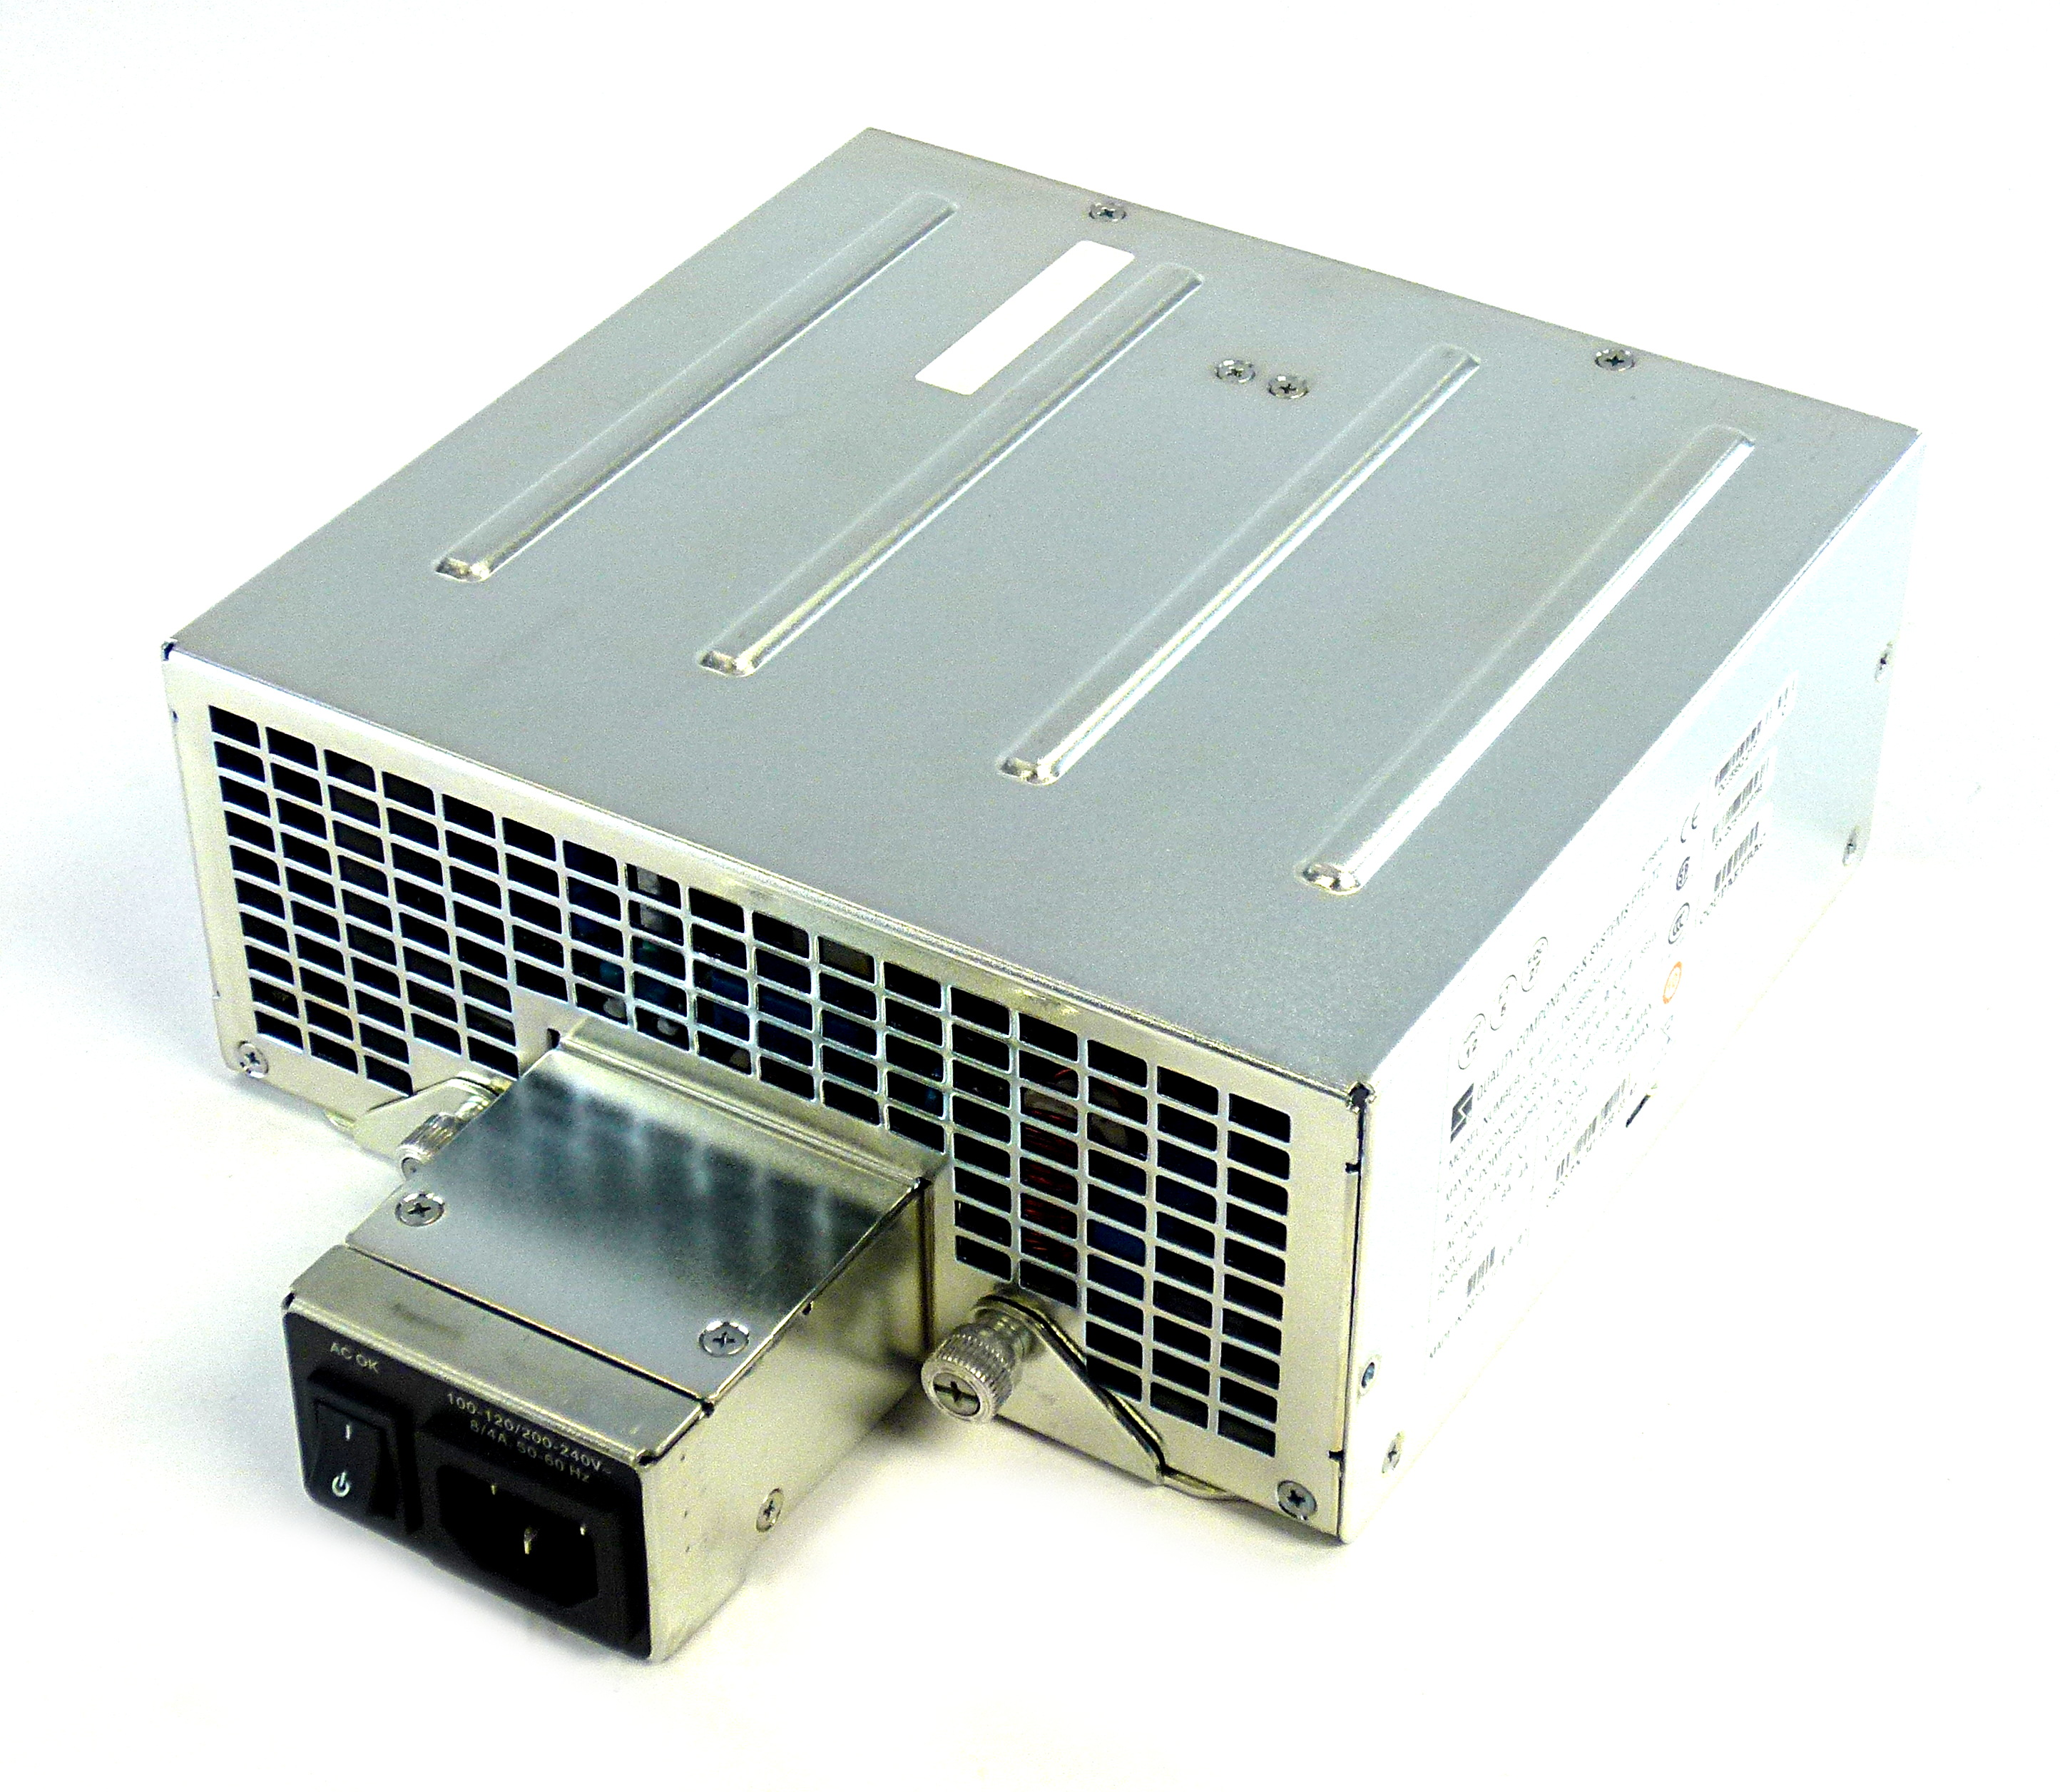 Cisco 341-0238-03 APS-234 600W Power Supply For Cisco 3900 Series 3925 ISR